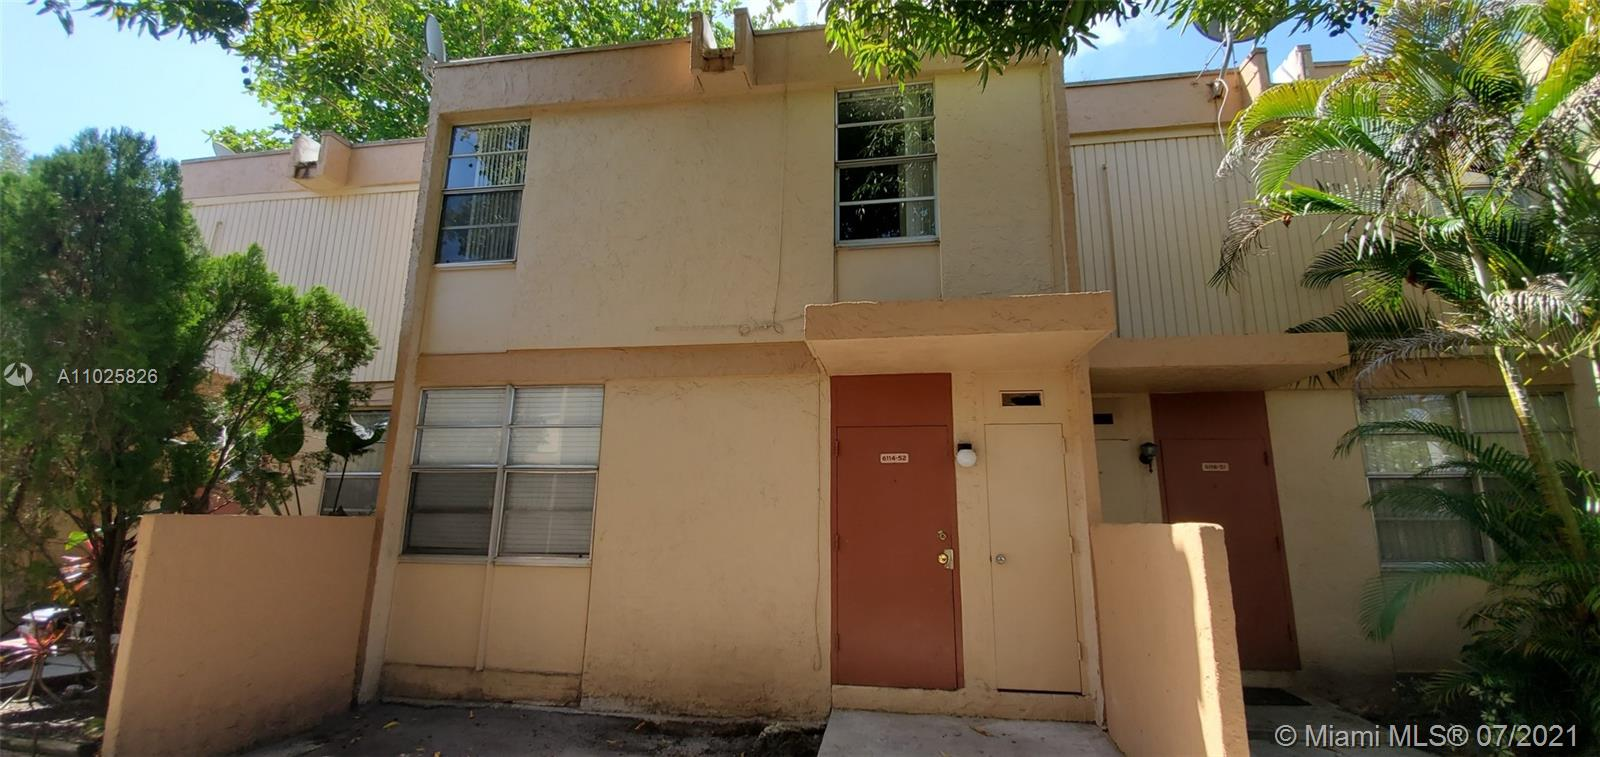 EXCELLENT LOCATION NEAR UM, WHOLE FOODS, SOUTH MIAMI METRO. 4/2 RENTS FOR $2,400/MONTH